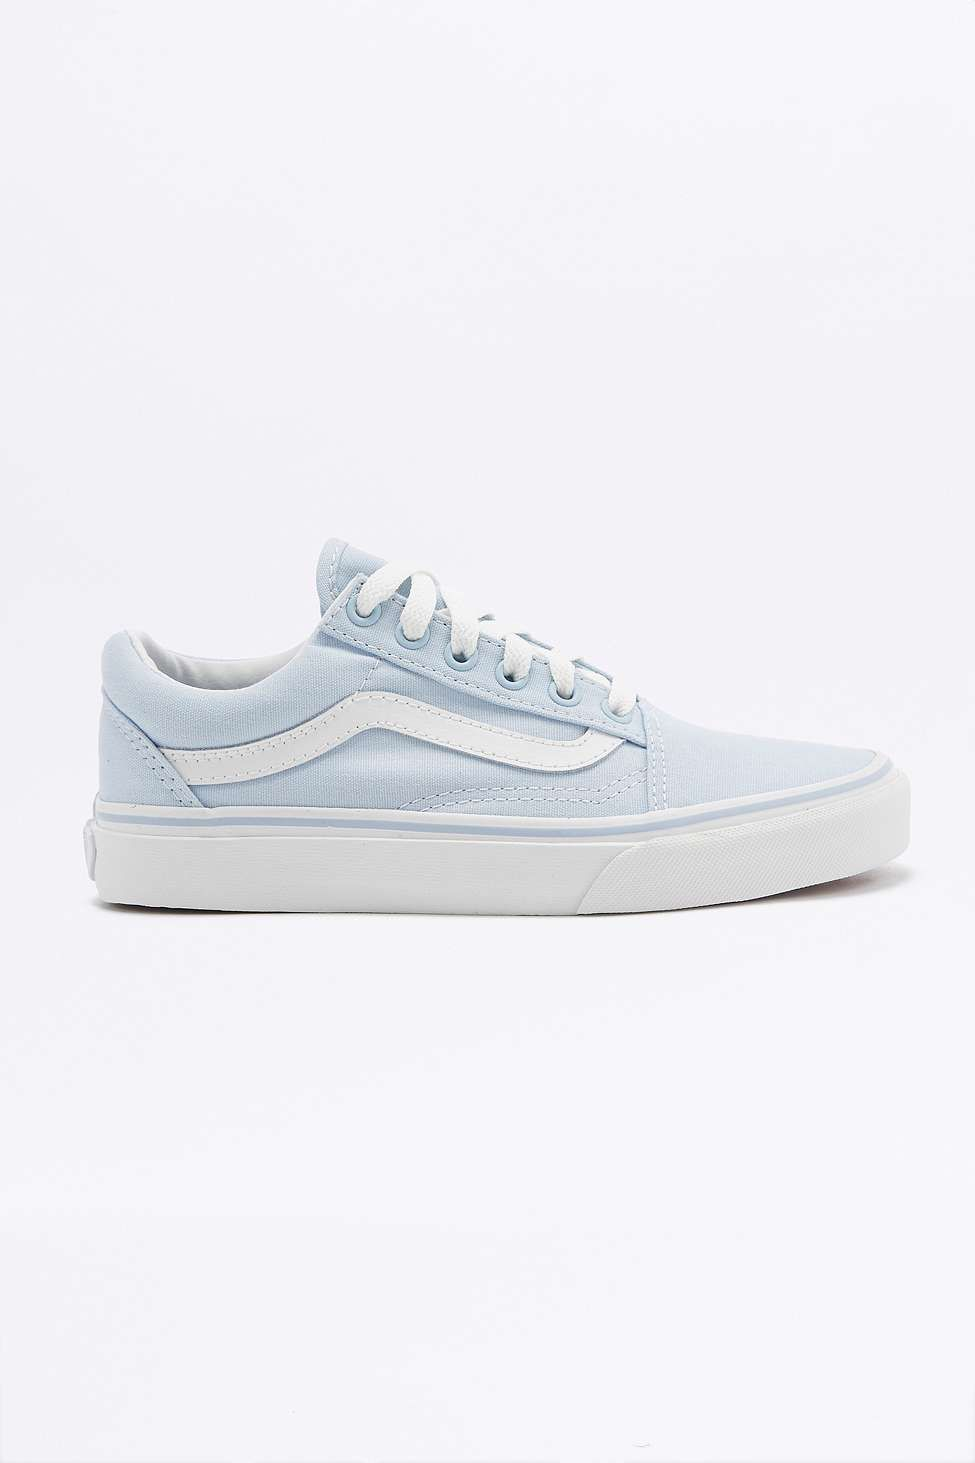 bcc52d0ae9ec0a Vans Old Skool Baby Blue Trainers